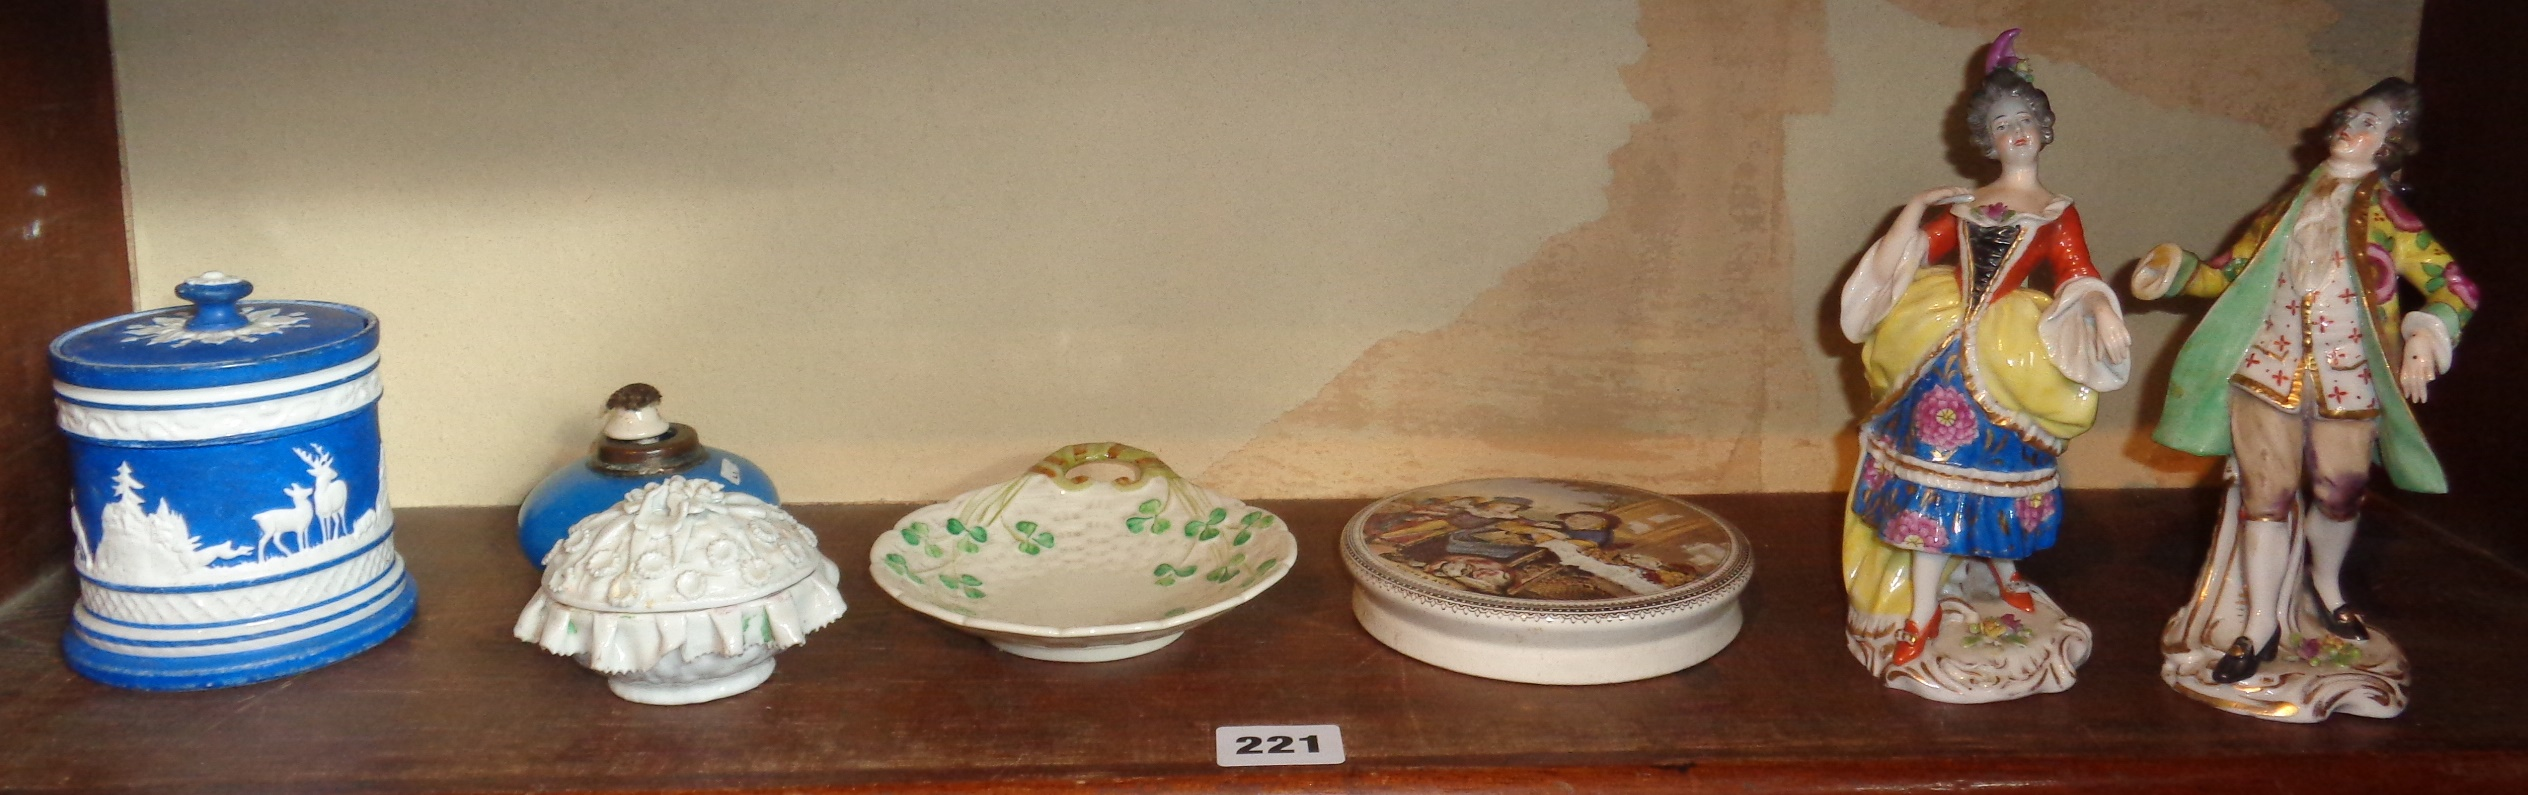 Lot 221 - Belleek dish (green back stamp), pair Chelsea Derby figures with gold anchor mark (A/F), other china